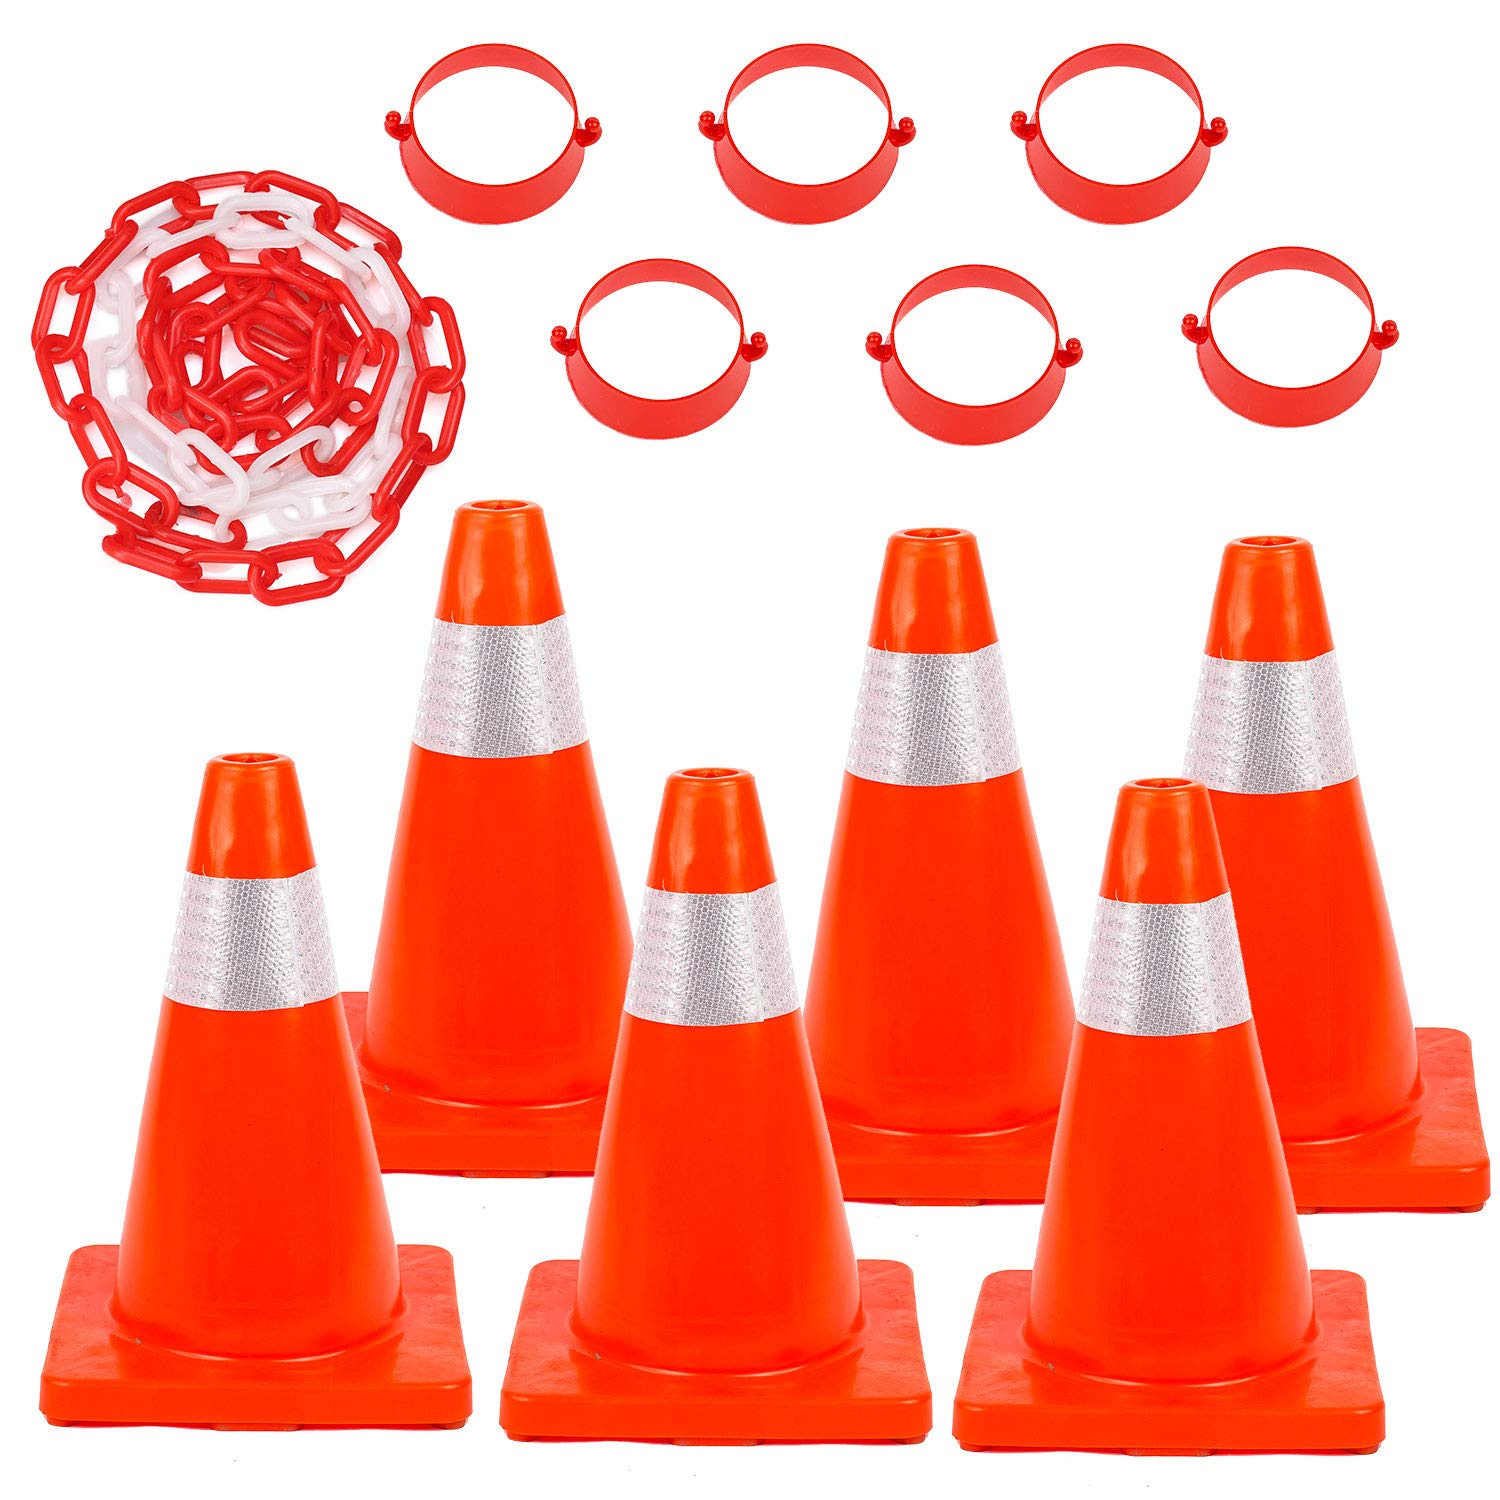 Traffic Safety Cones 6 Pack 18'' with Reflective Collars and 32FT Chain Connector Kit PVC Unbreakable Orange Construction for Traffic Home Parking